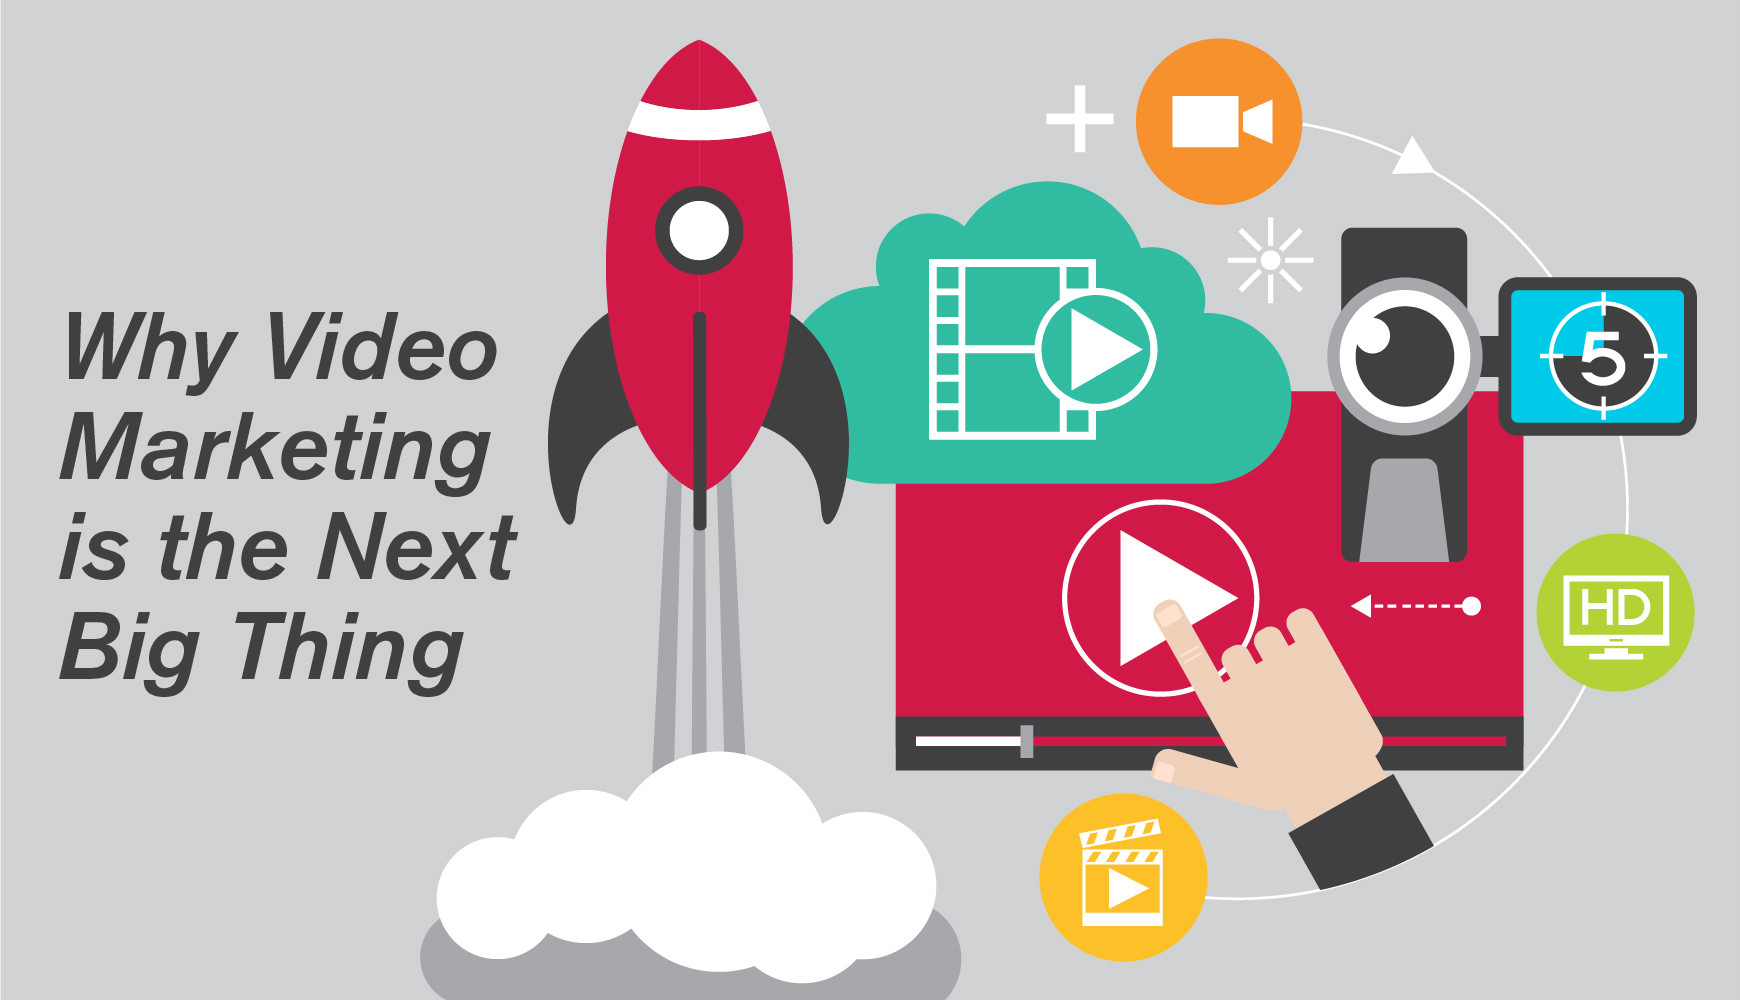 VideoMarketing-blog1